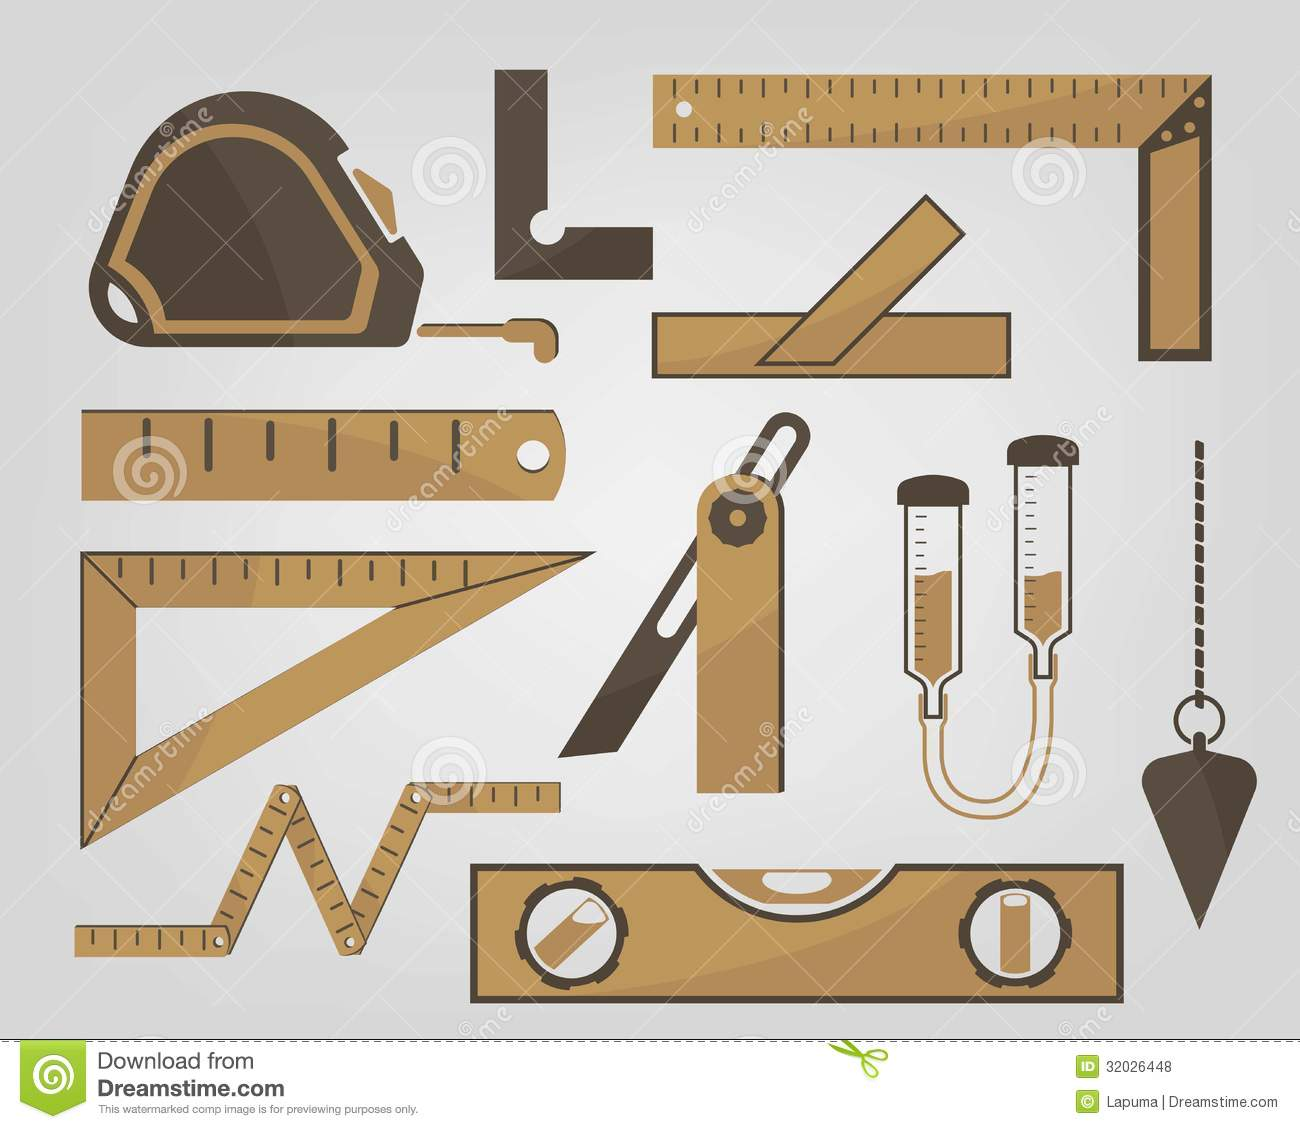 Used Measuring Instruments : Measuring instruments royalty free stock photos image